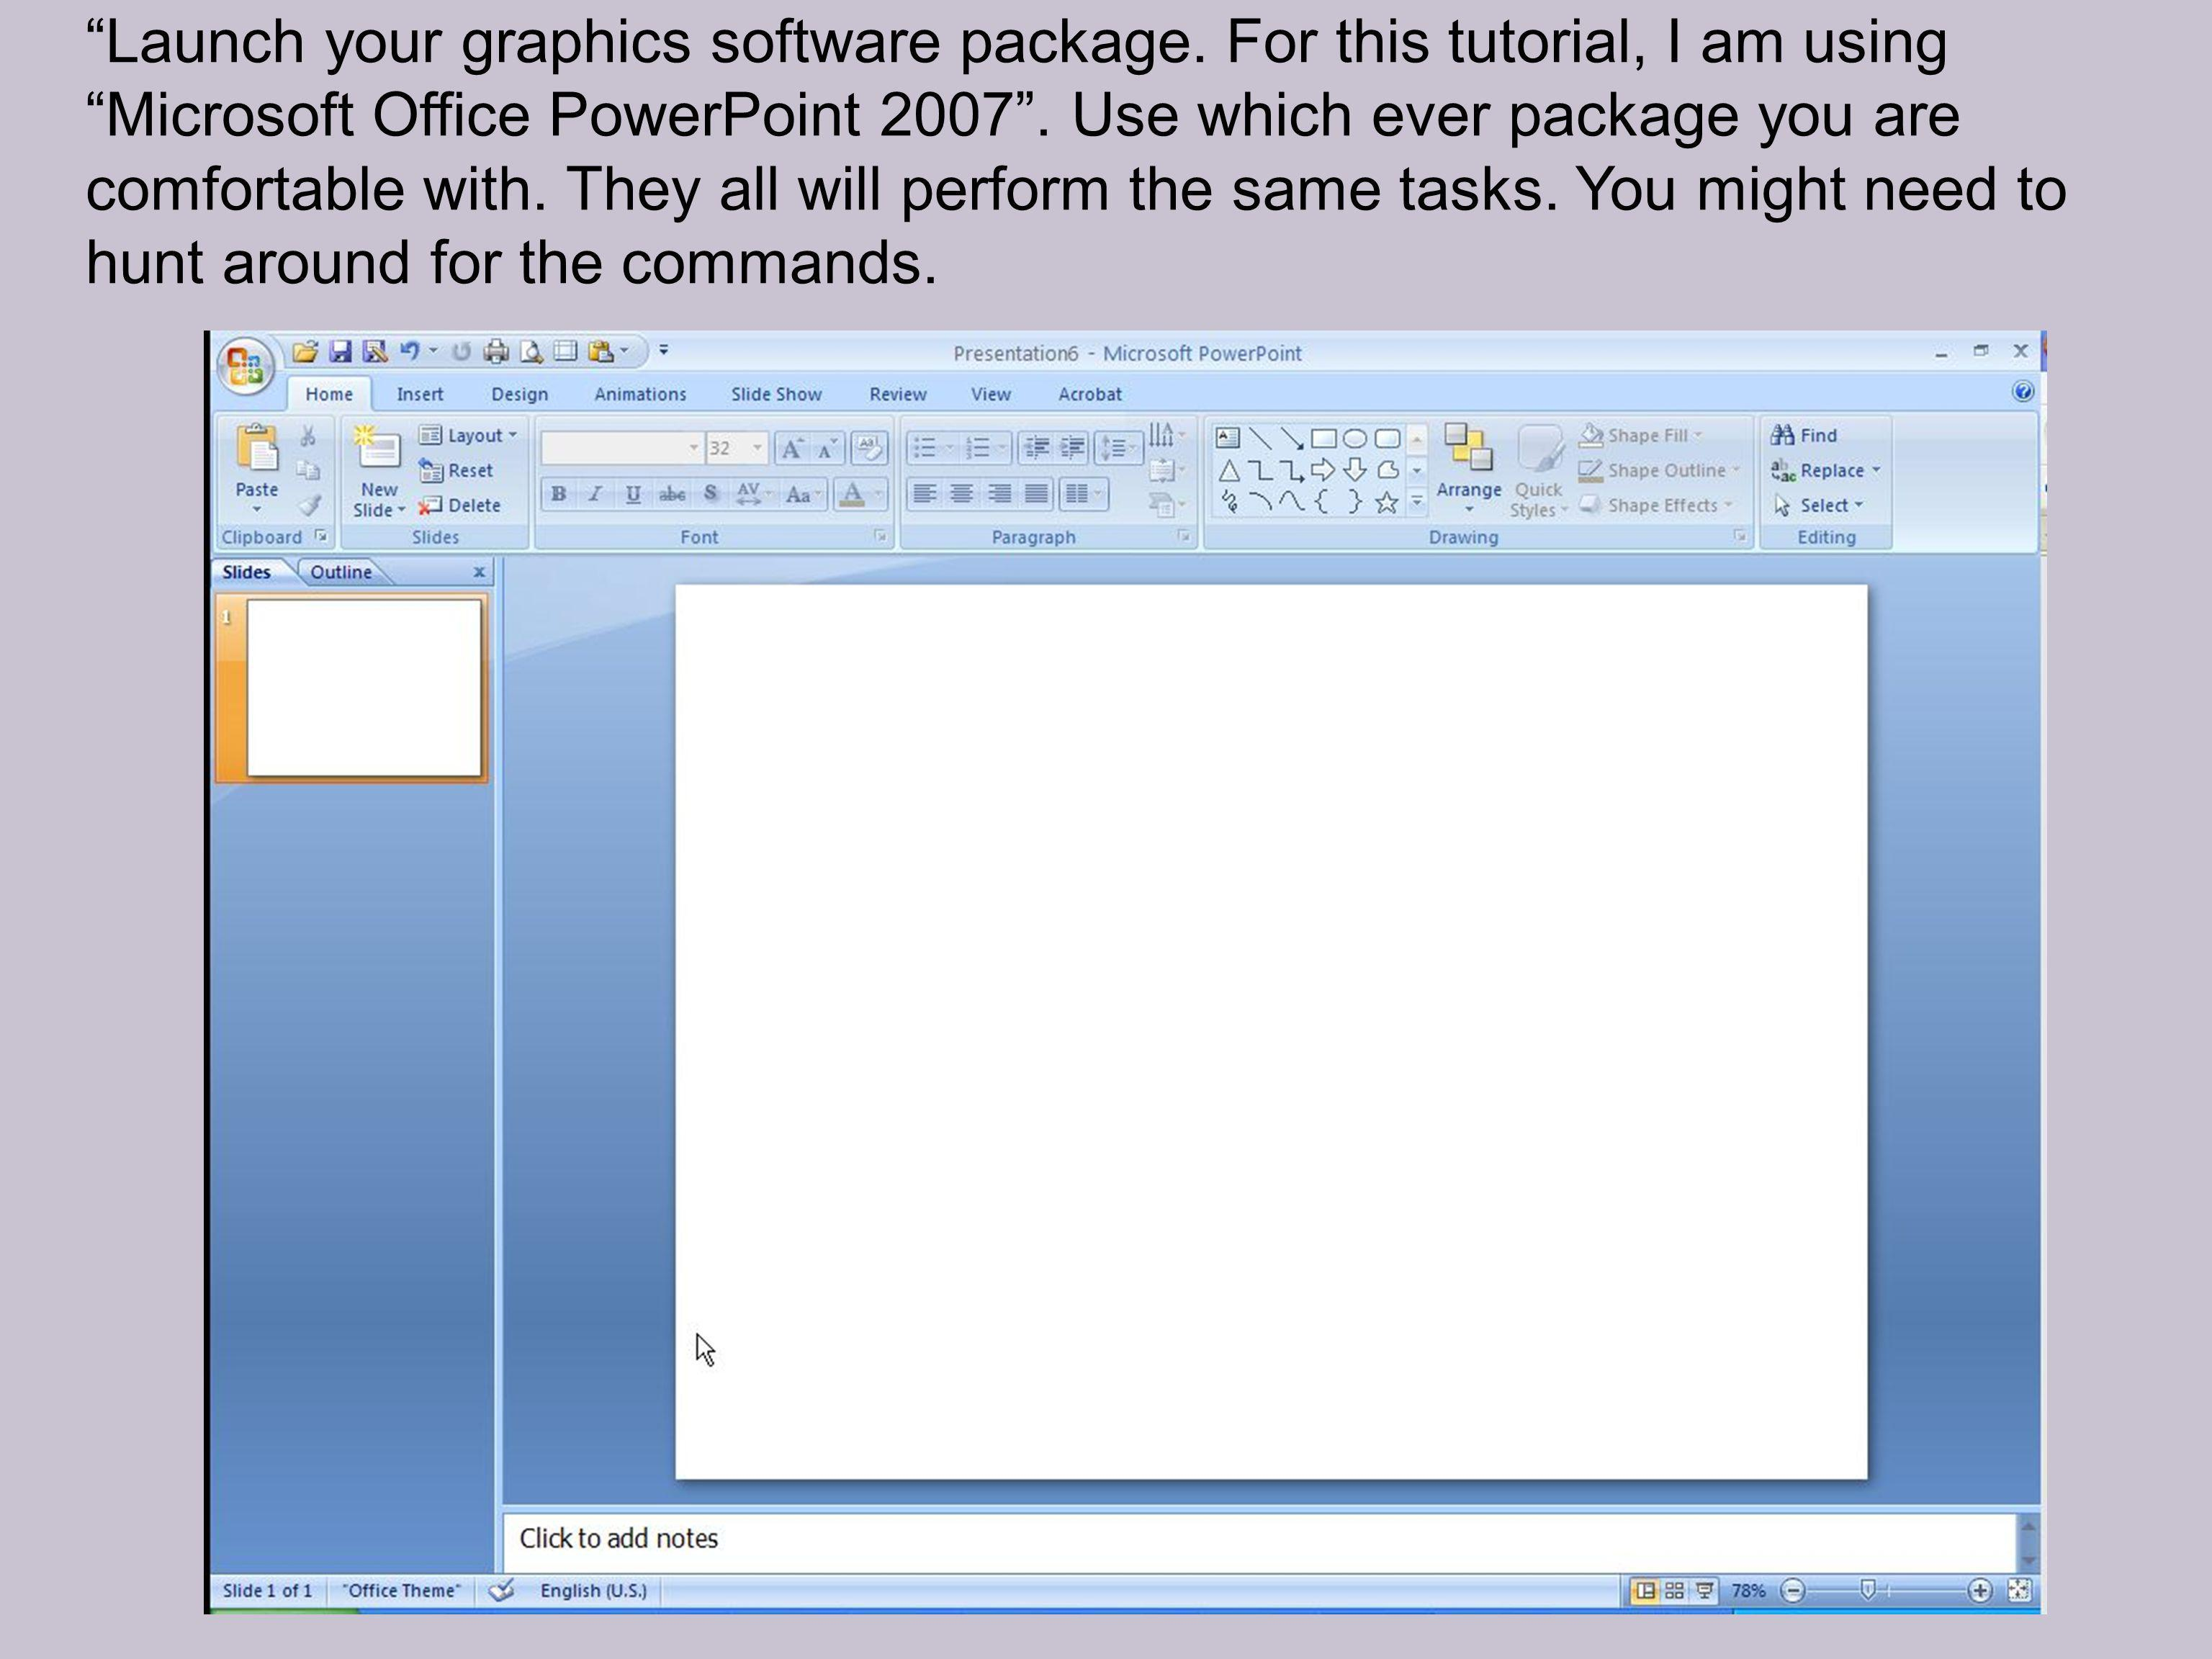 Launch your graphics software package